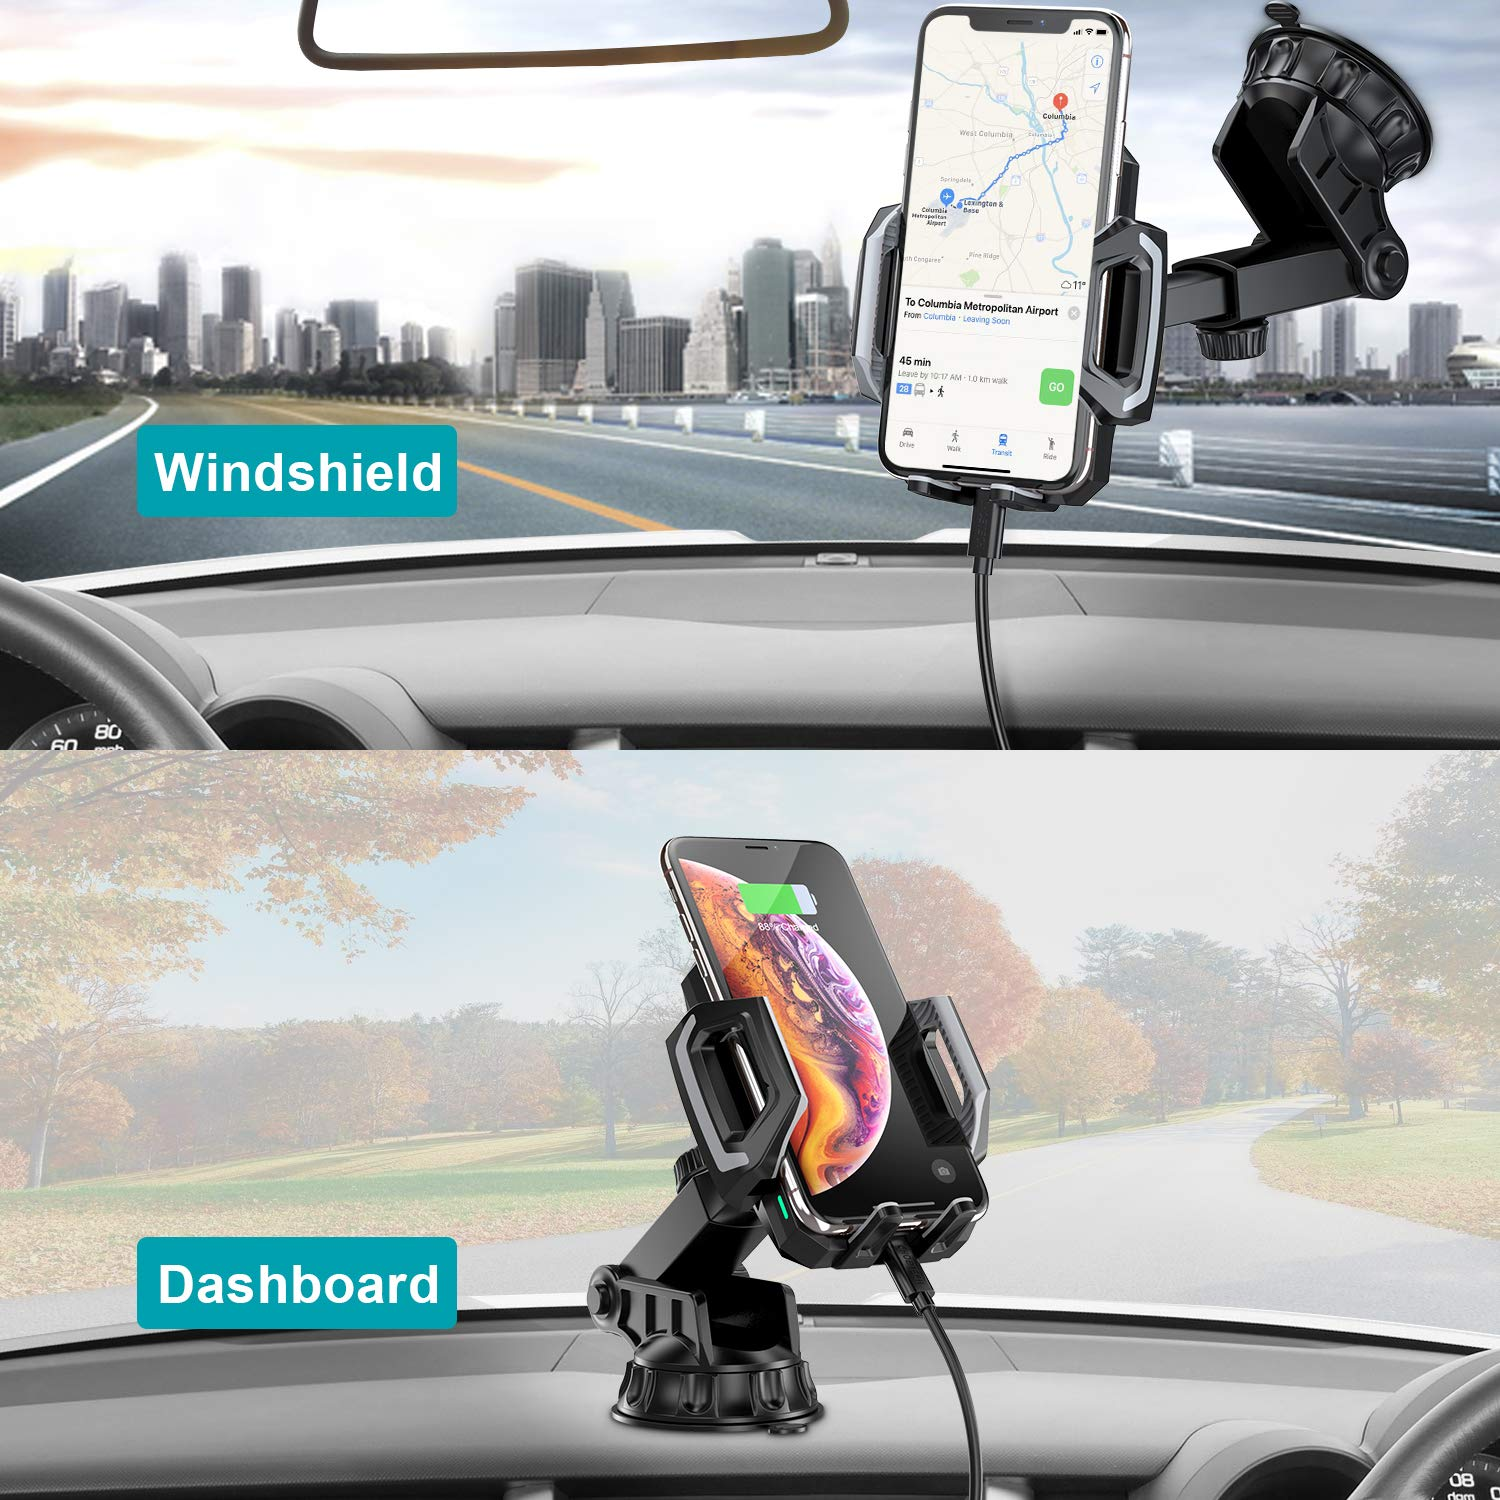 CHOETECH Wireless Car Charger Fast Wireless Car Charger Holder with Strong Suction 7.5W Compatible with iPhone XR//XS//XS Max//X//8//8 Plus,10W for Galaxy Note 9//S10//S9//S9+,S8//S8+//Note 8 5W for Huawei Mate 20 pro Upgraded